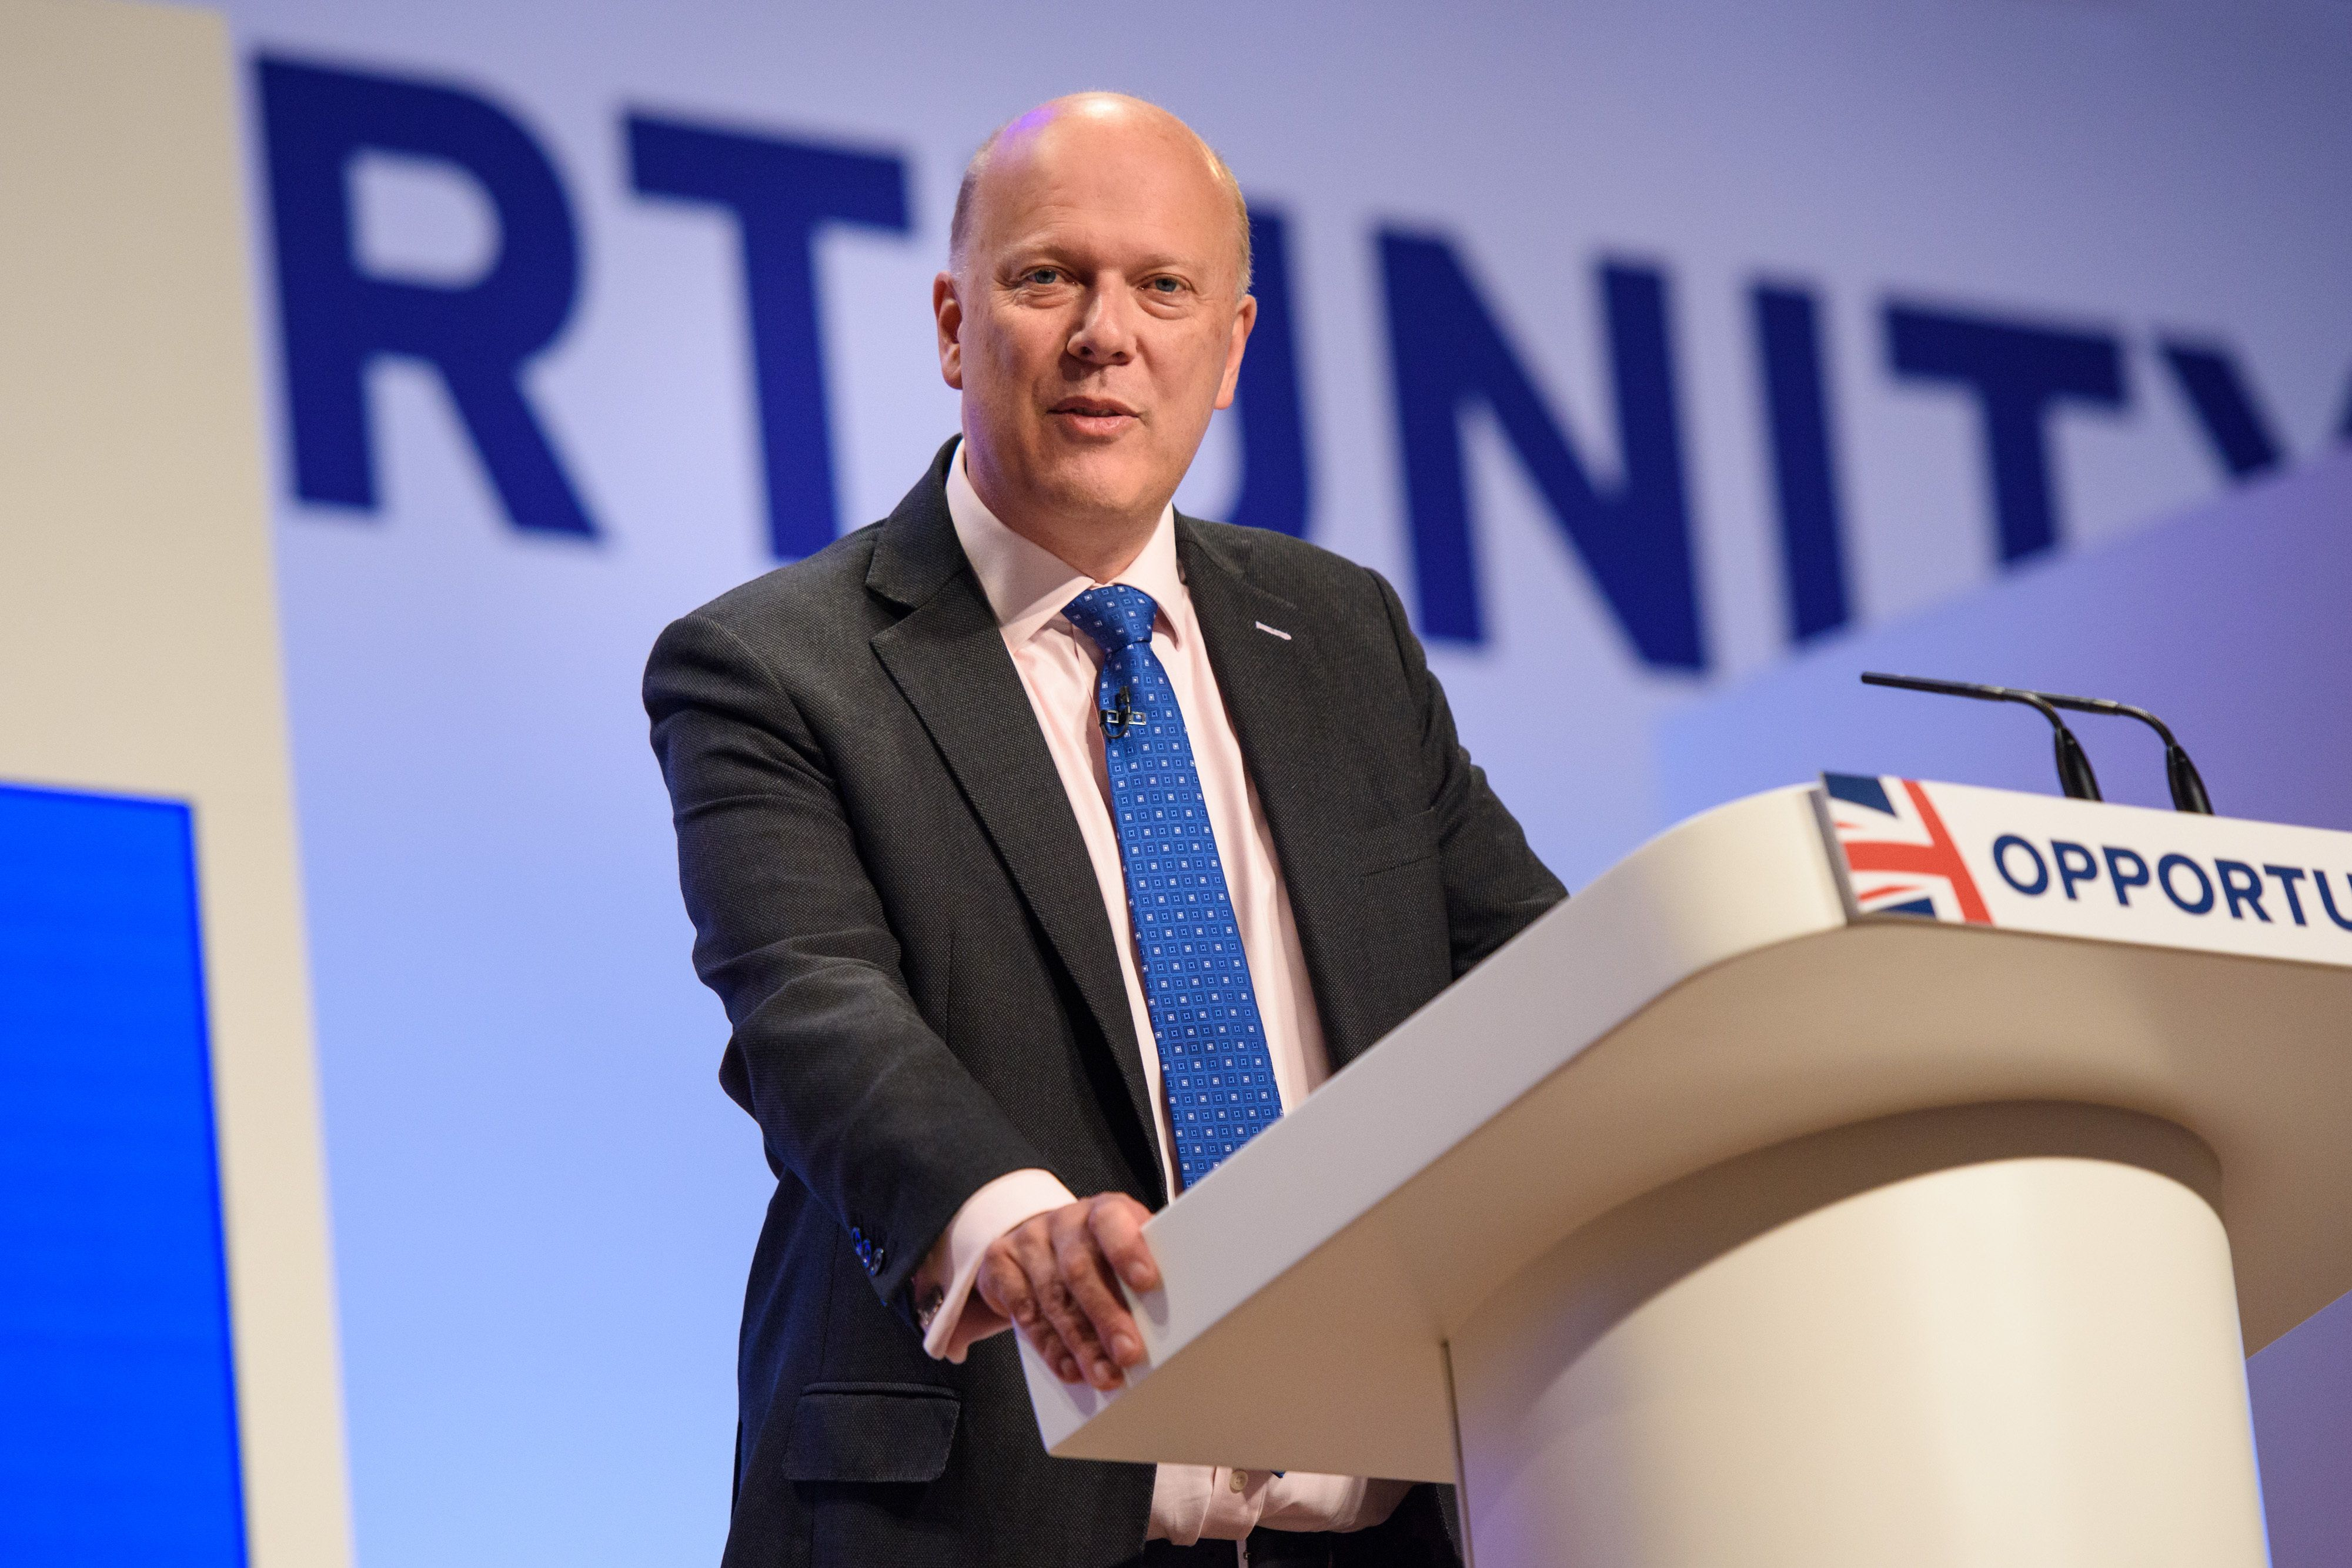 Talks On Post-Brexit Flights Have Not Started Yet, Chris Grayling